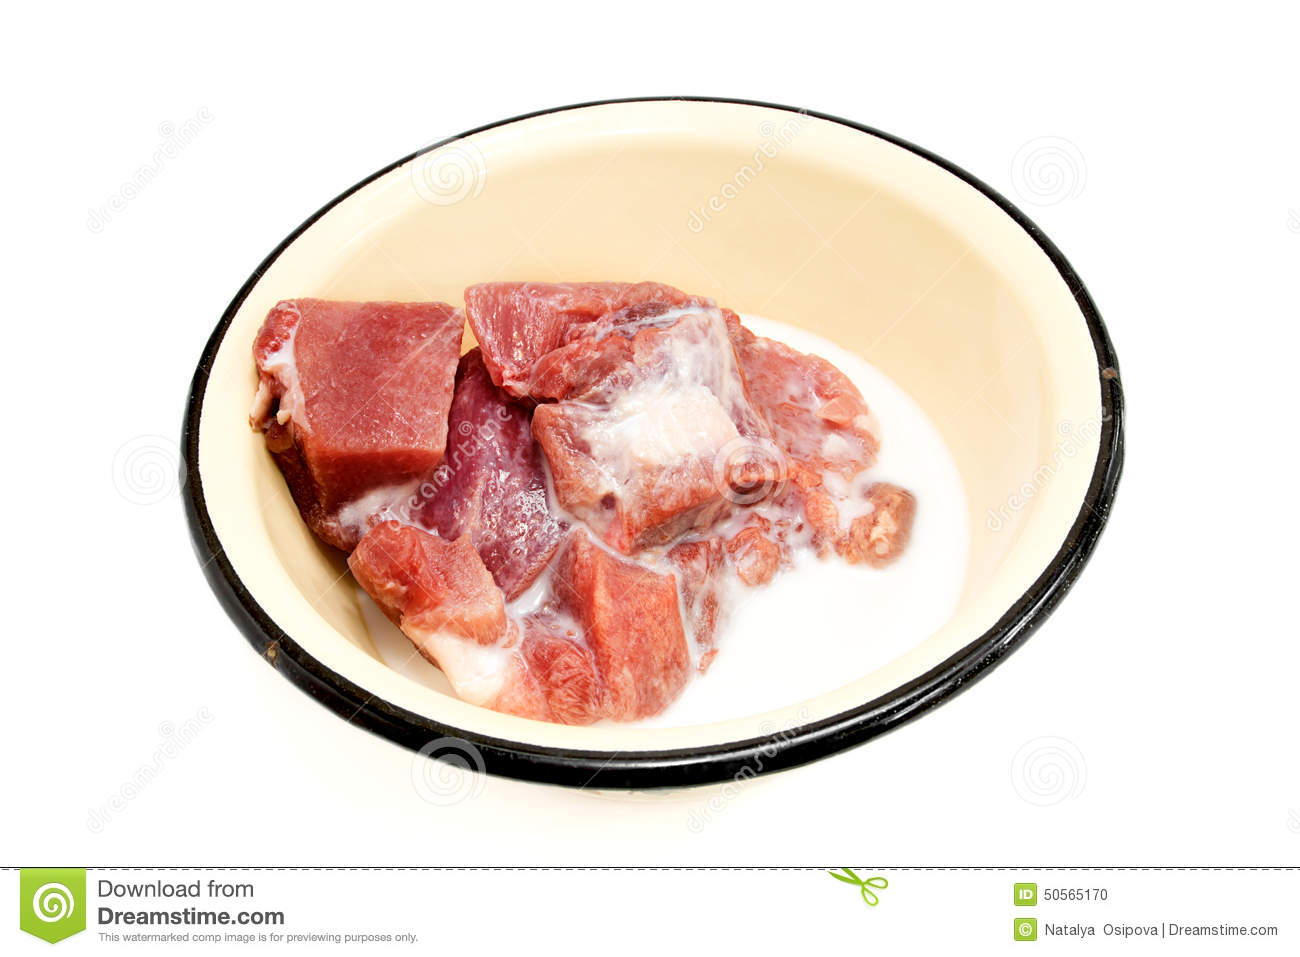 Is it necessary to soak the beef liver in milk and how to properly fry it